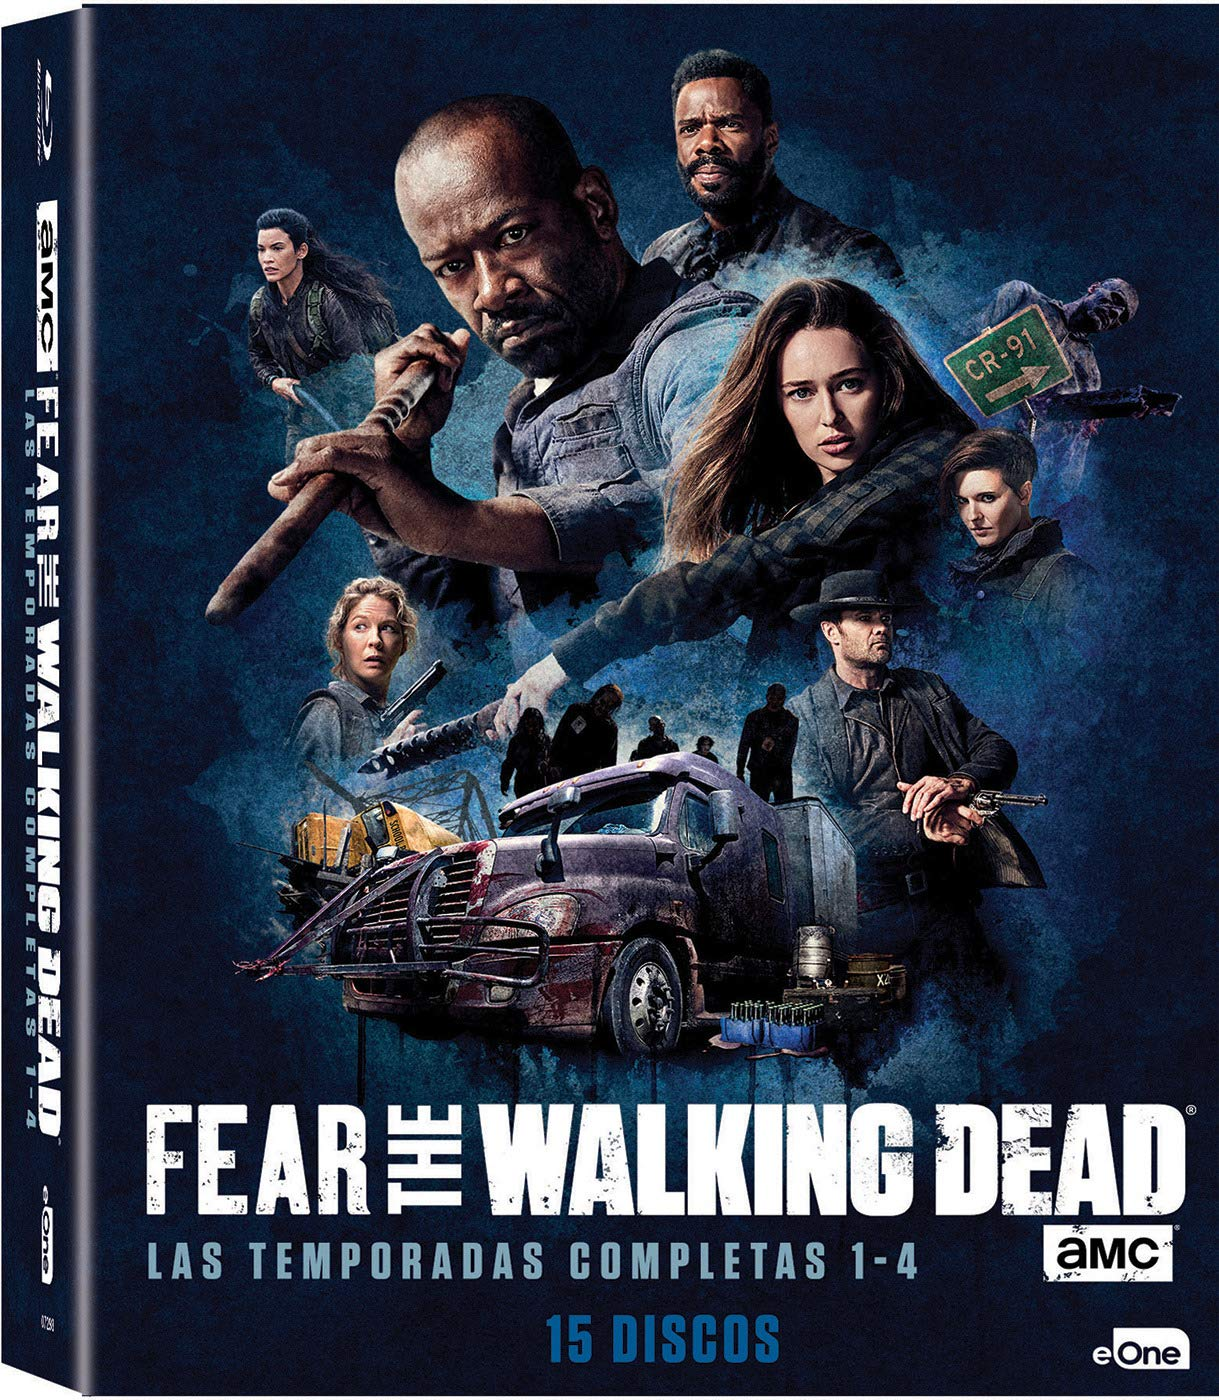 Pack Fear The Walking Dead Temporada 1 - 4 Blu-Ray Blu-ray: Amazon.es: Kim Dickens, Frank Dillane, Cliff Curtis, Dave Erickson, Robert Kirkman, Kim Dickens, Frank Dillane: Cine y Series TV